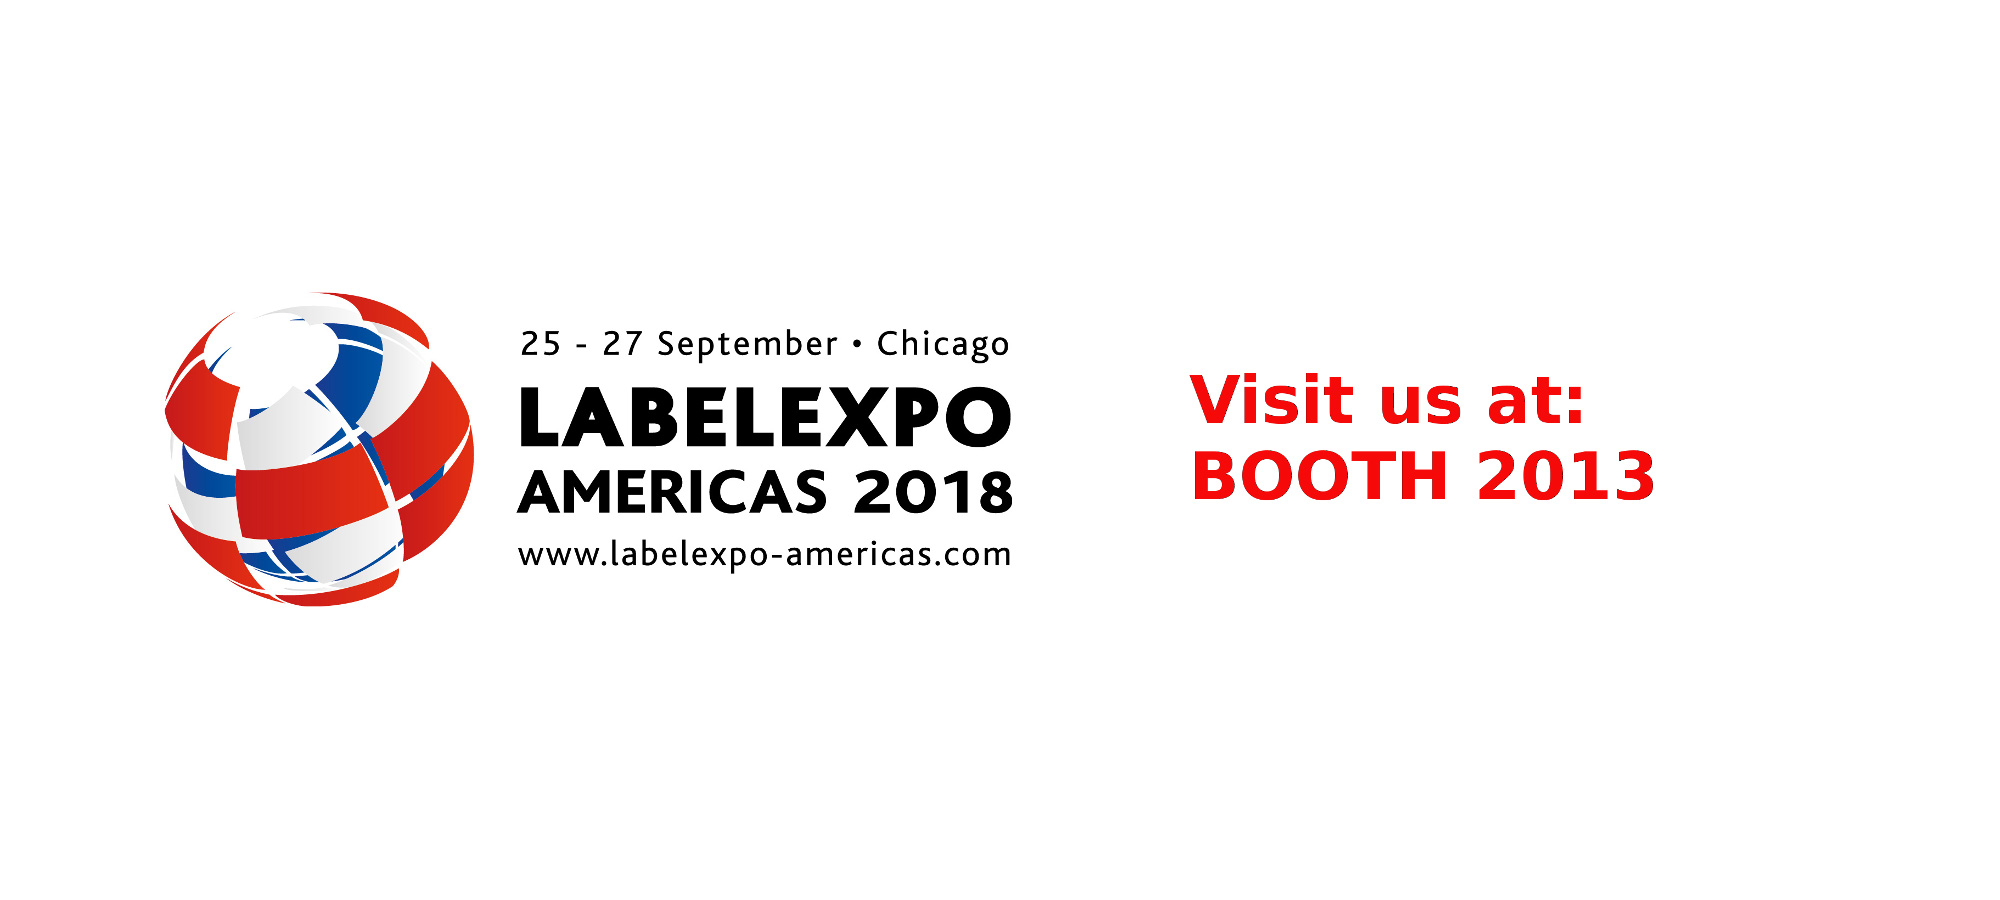 Visit us at Labelexpo 2018 booth 2013